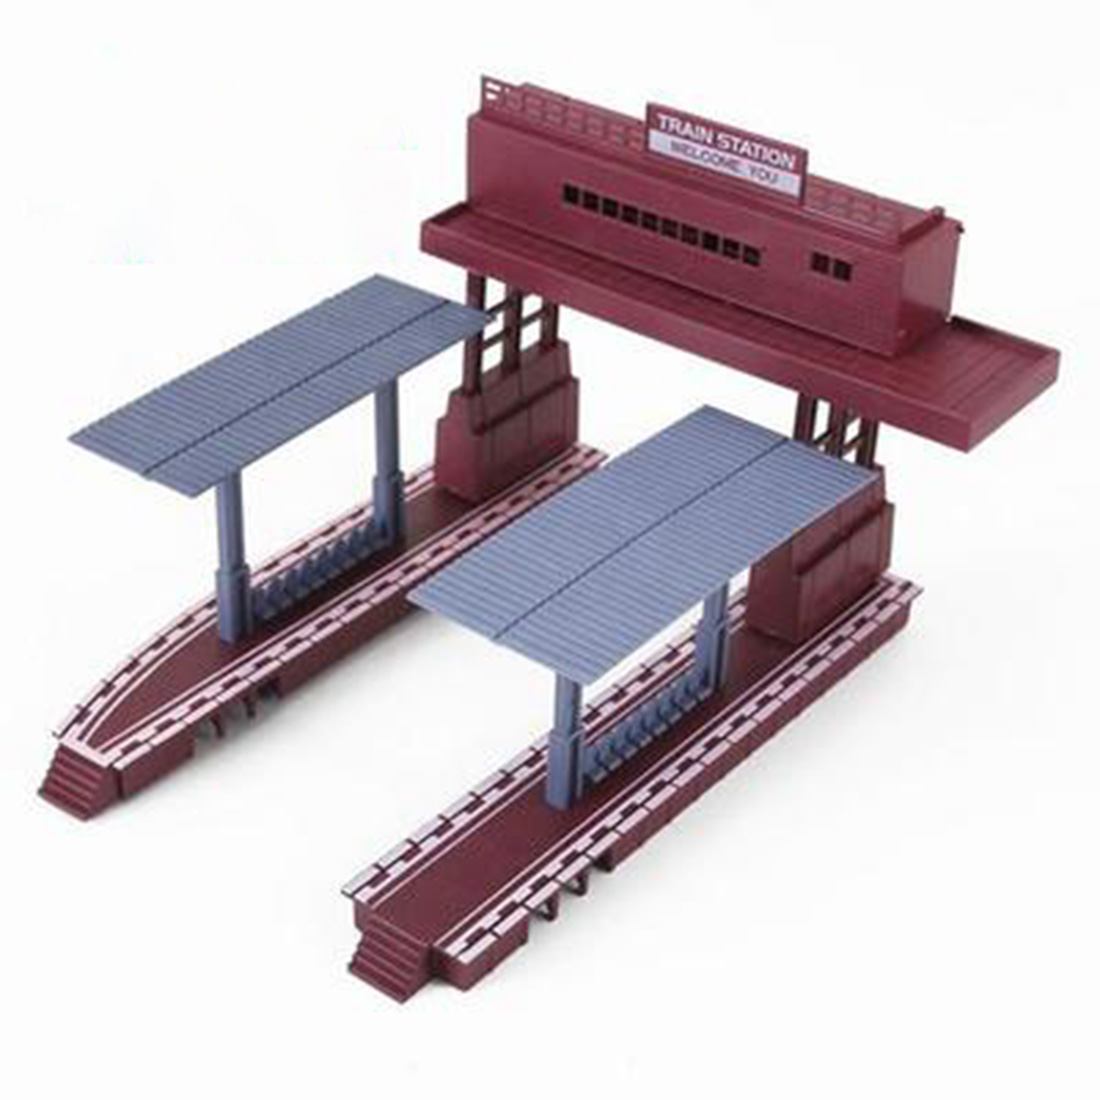 1:87 HO Scale Railway Scene Decoration Station Model For Sand Table Building